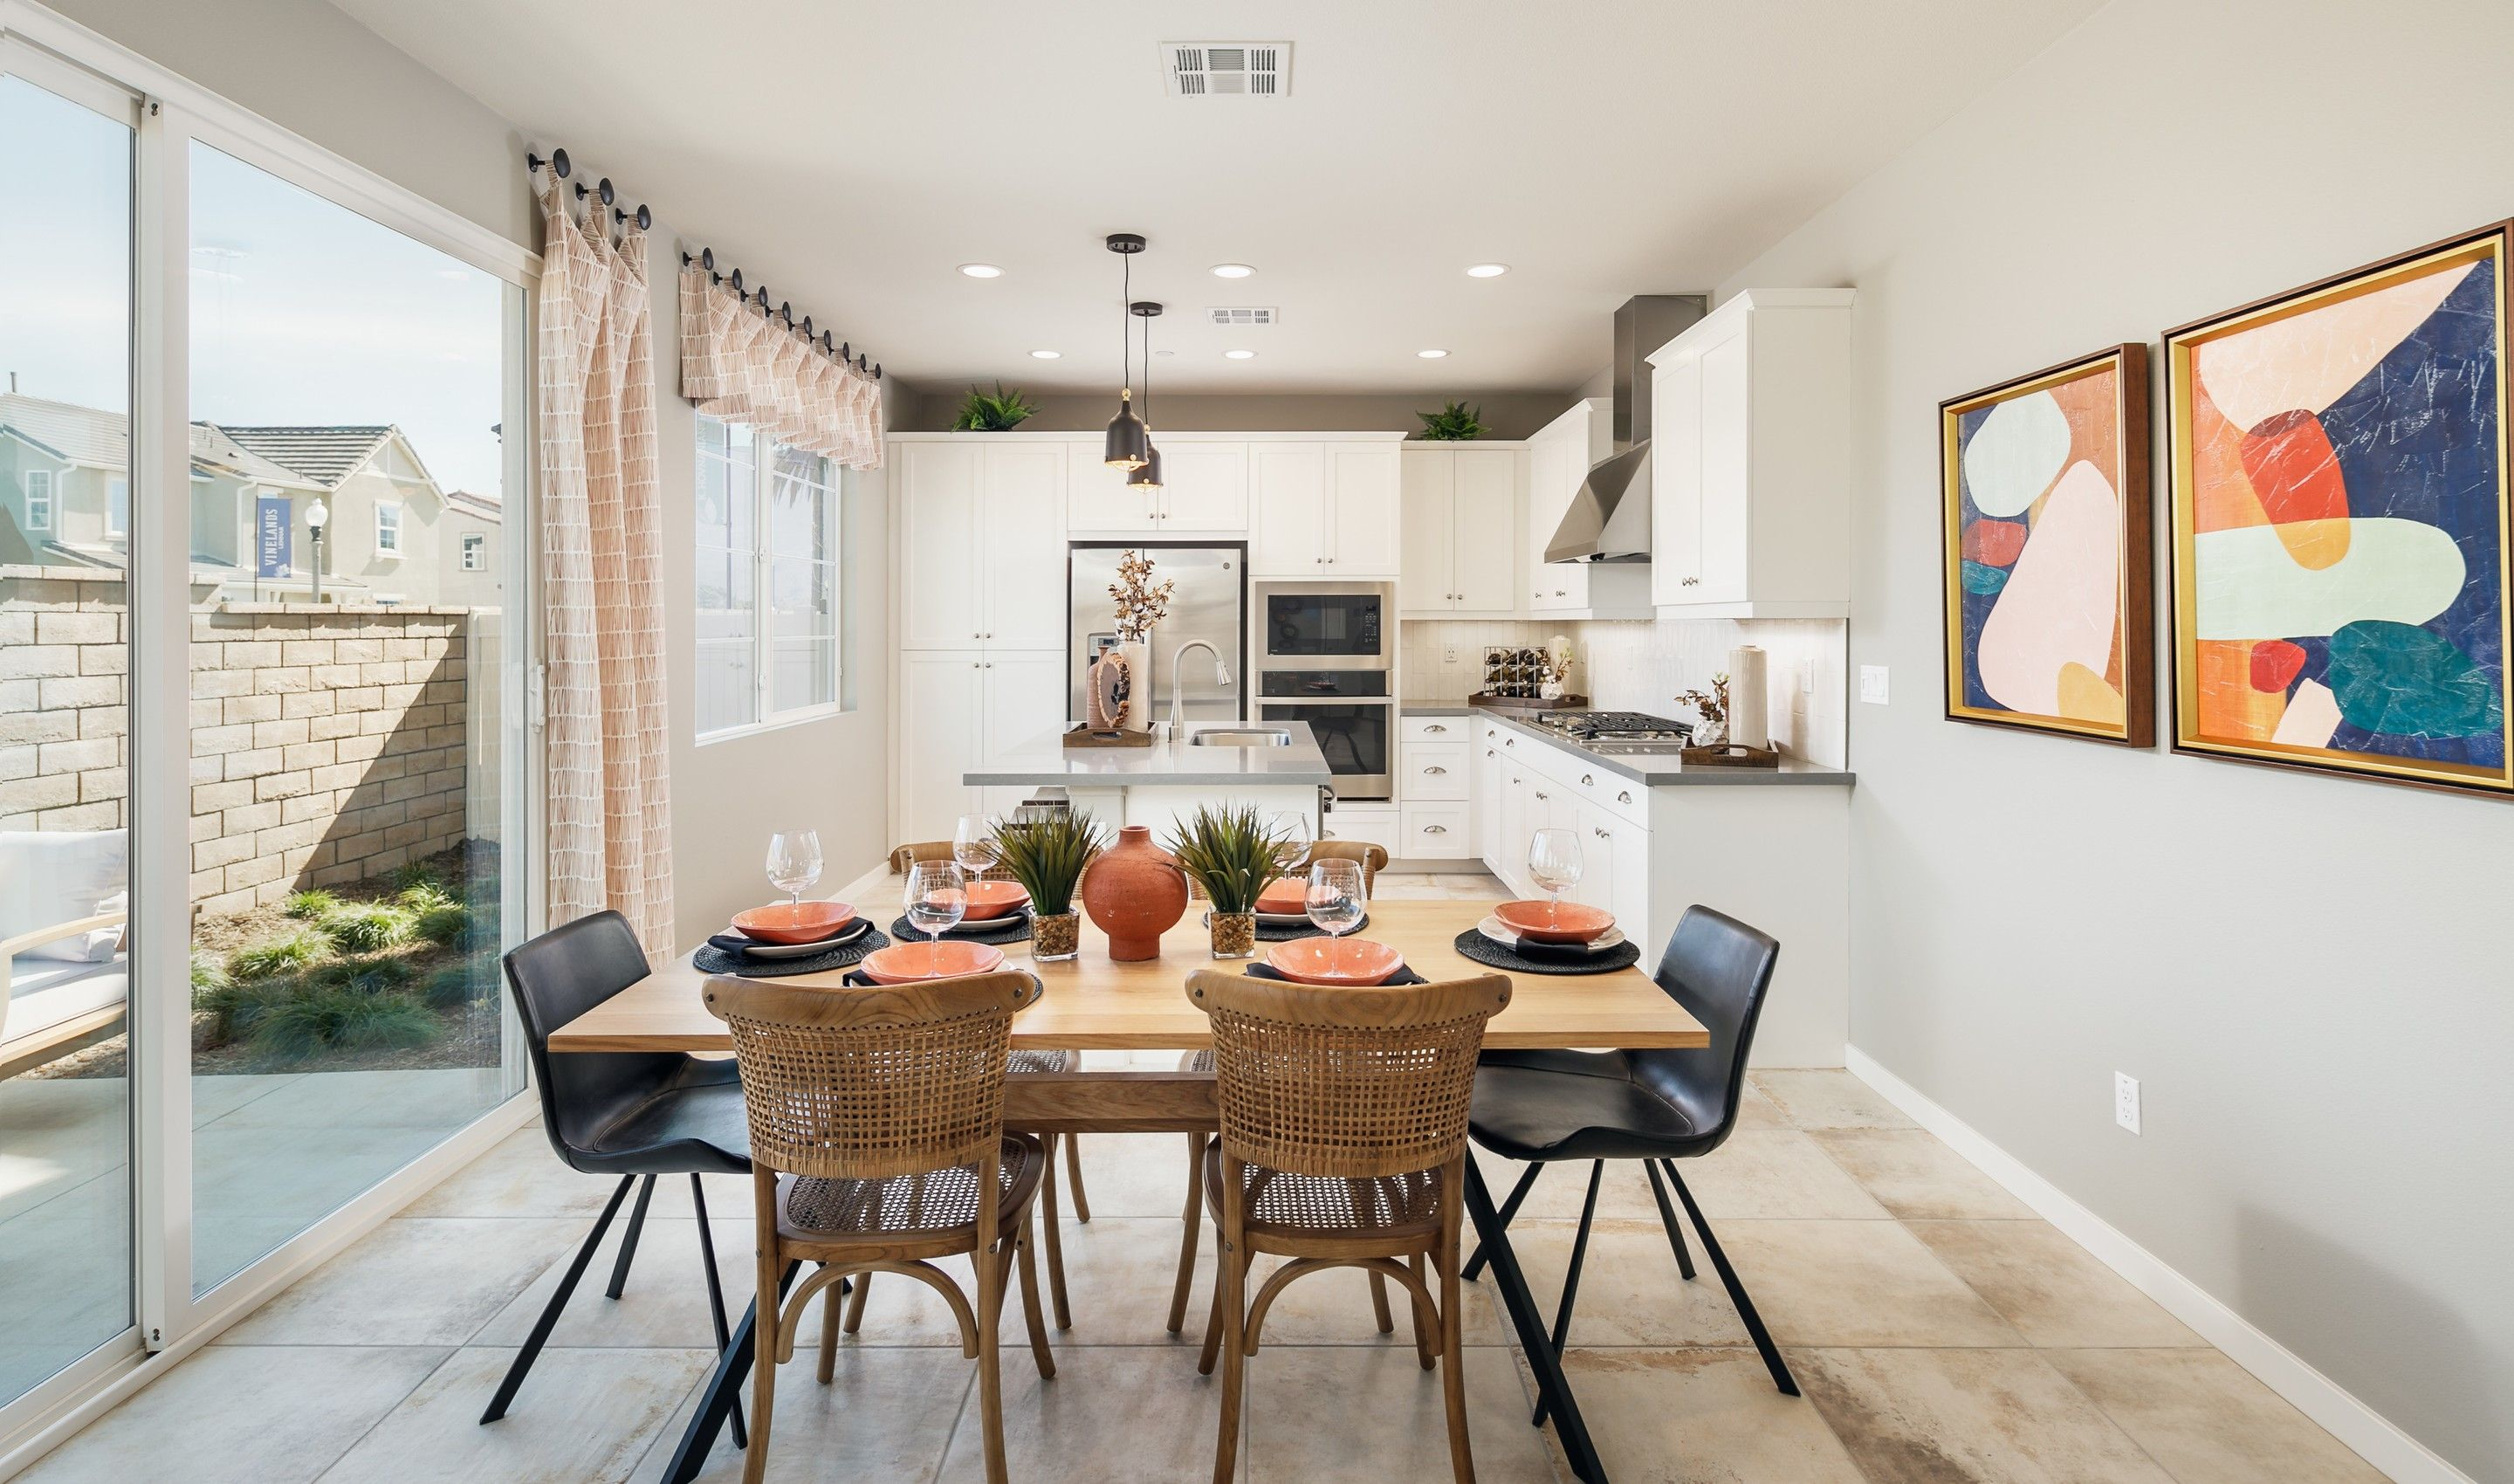 Kitchen featured in the Sunrise By K. Hovnanian® Homes in Ventura, CA